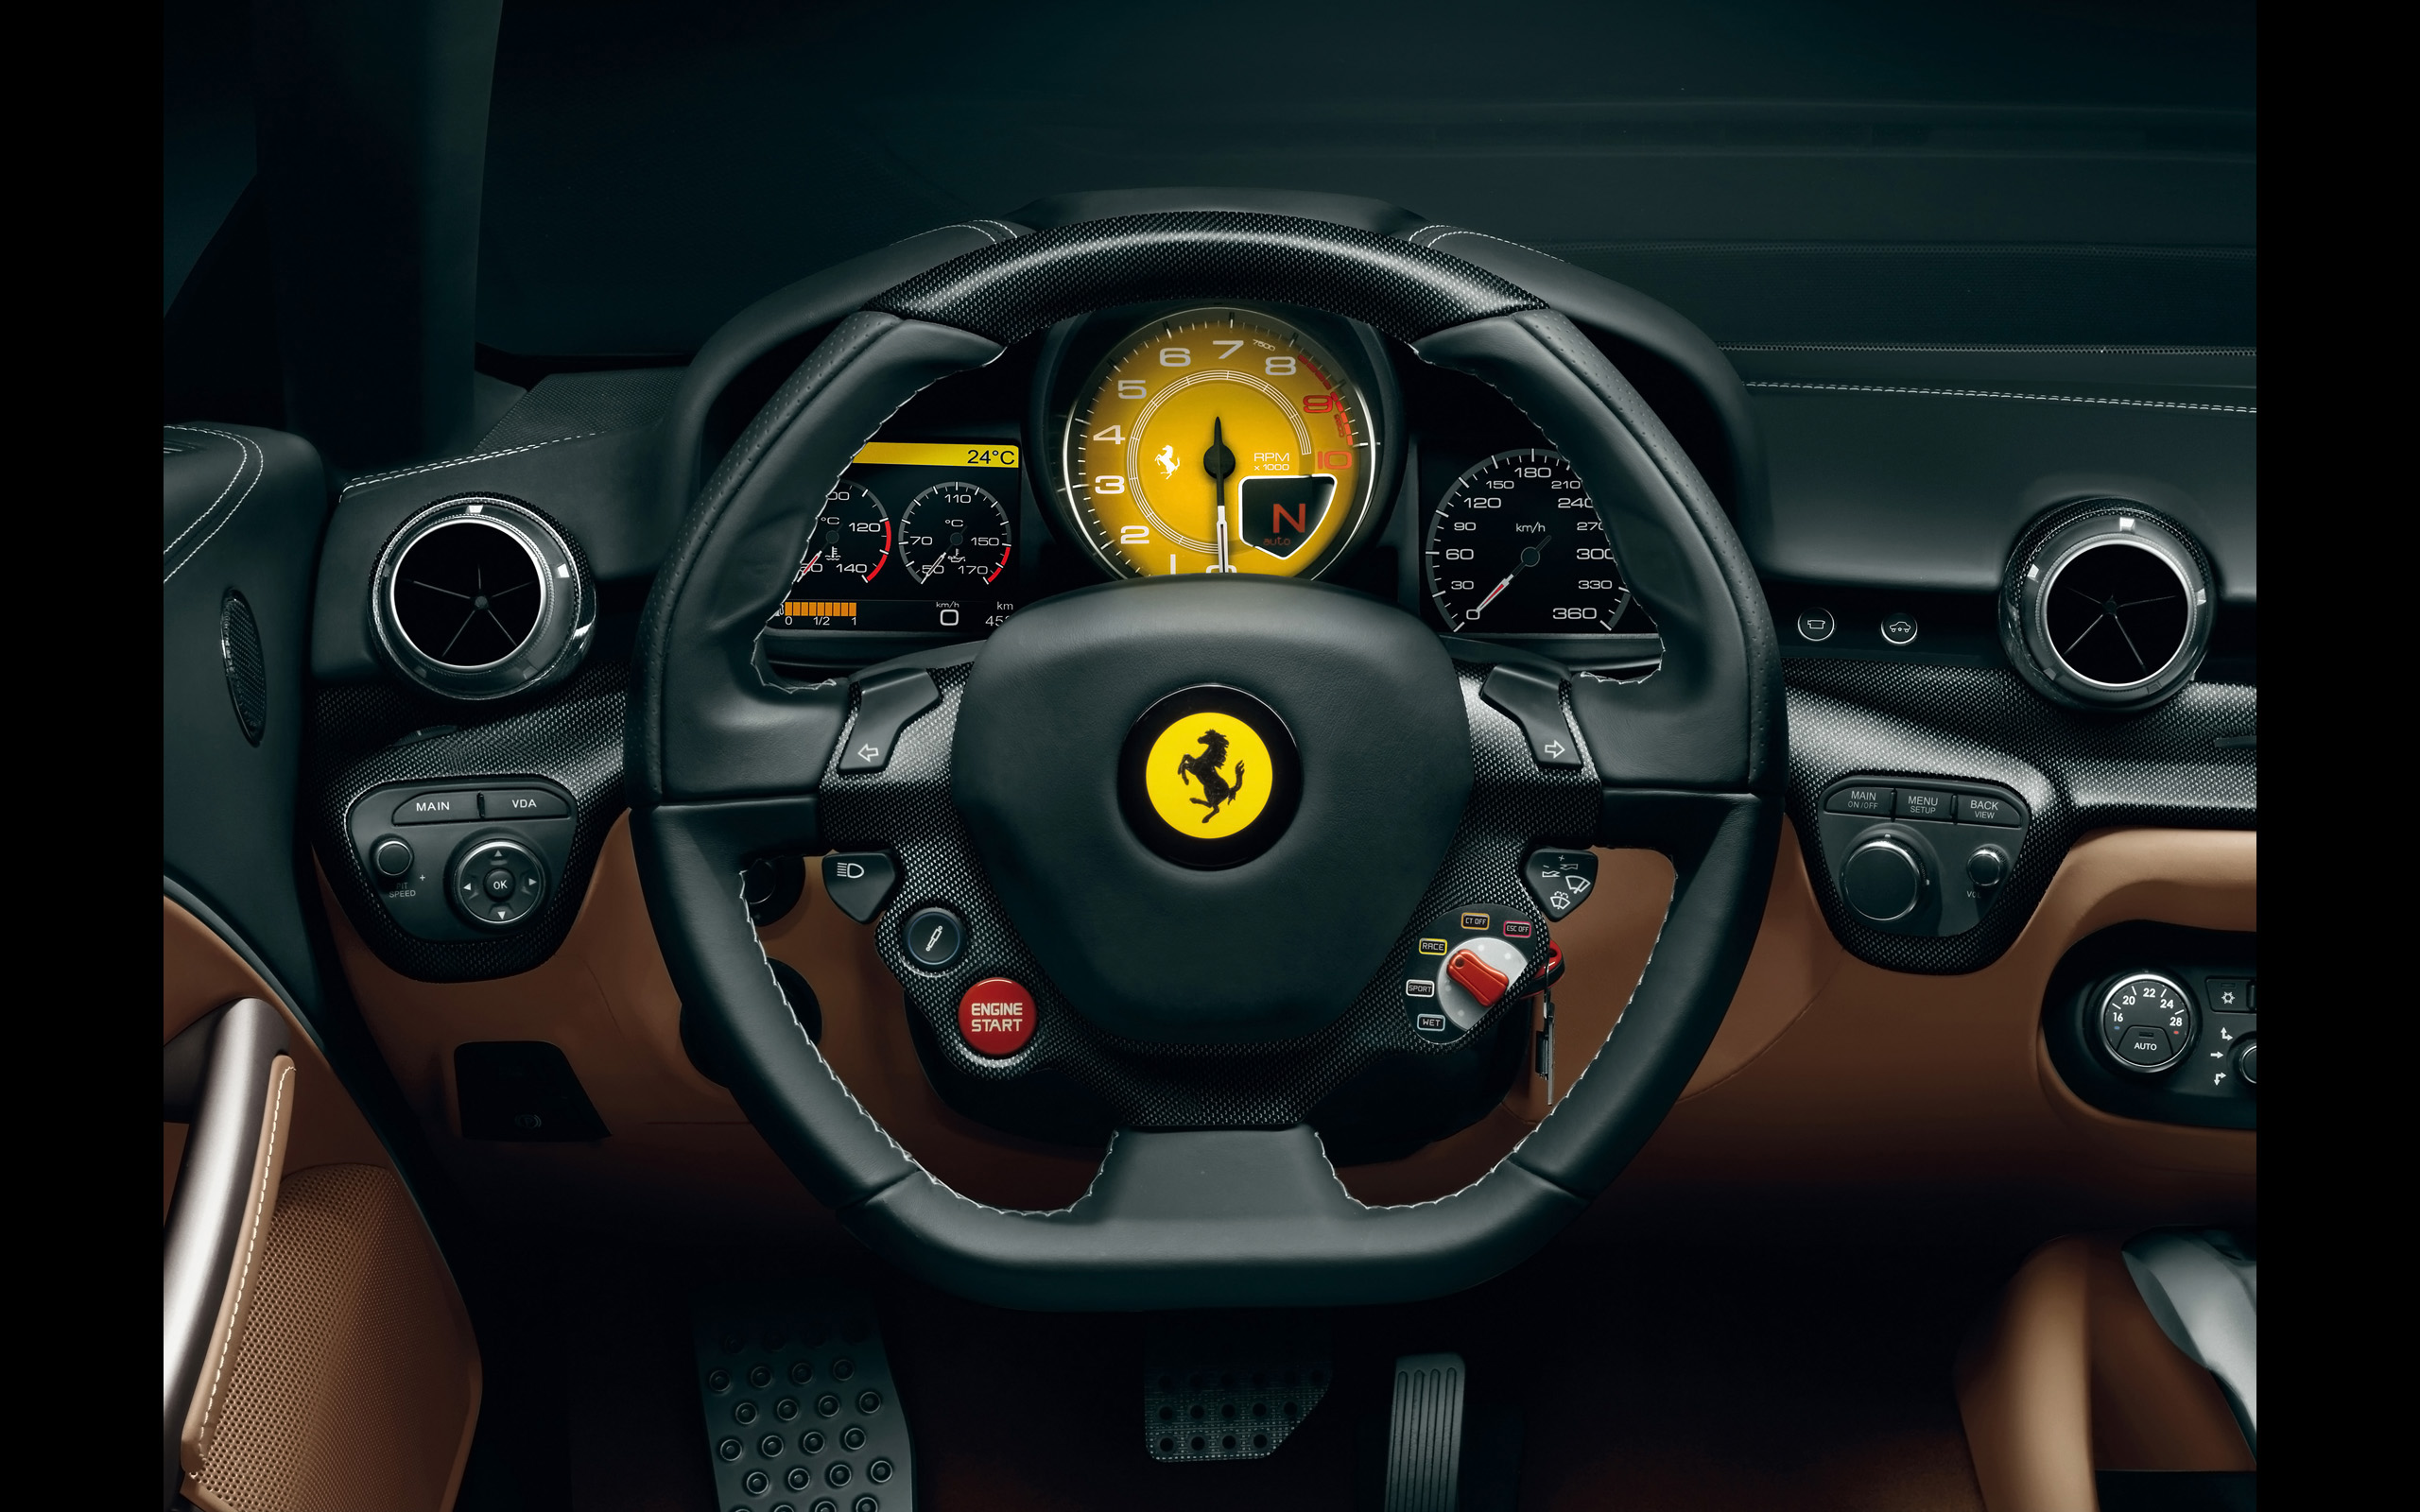 Ferrari f12 berlinetta interior fondos de pantalla for Interieur iphone x